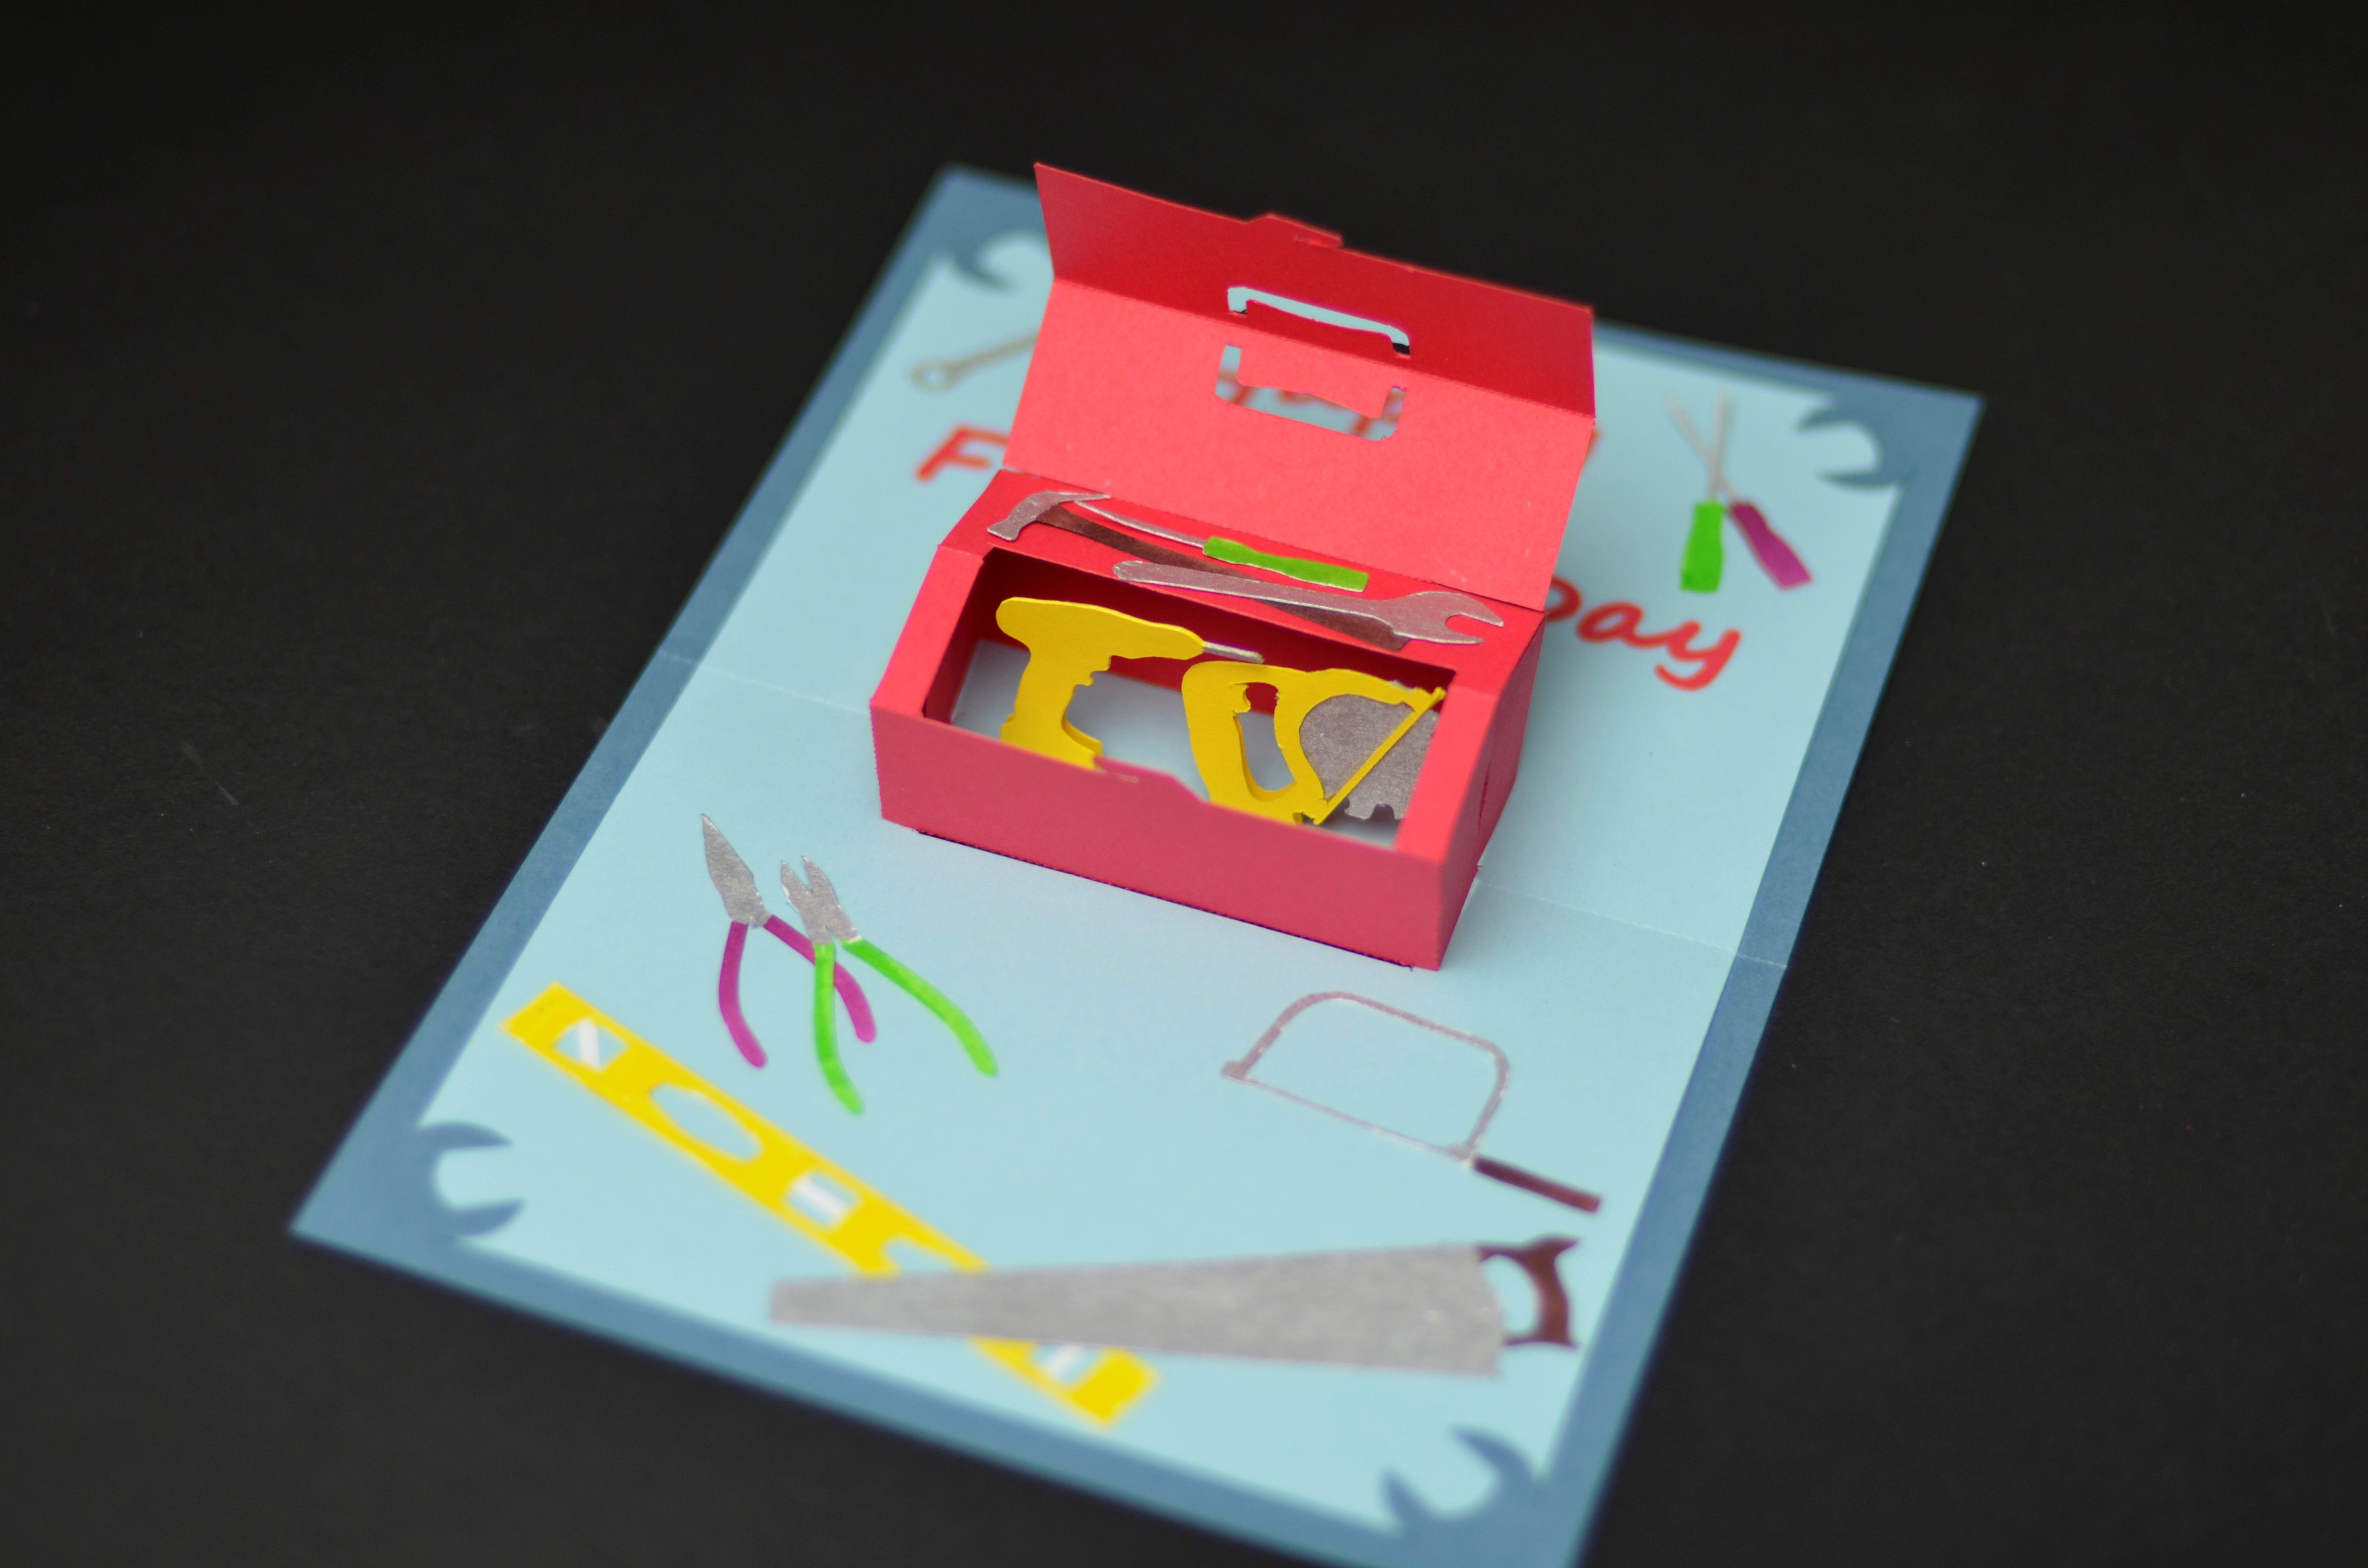 How To Make A Father S Day Toolbox Pop Up Card Creative Pop Up Cards Pop Up Card Templates Pop Up Cards Fathers Day Crafts